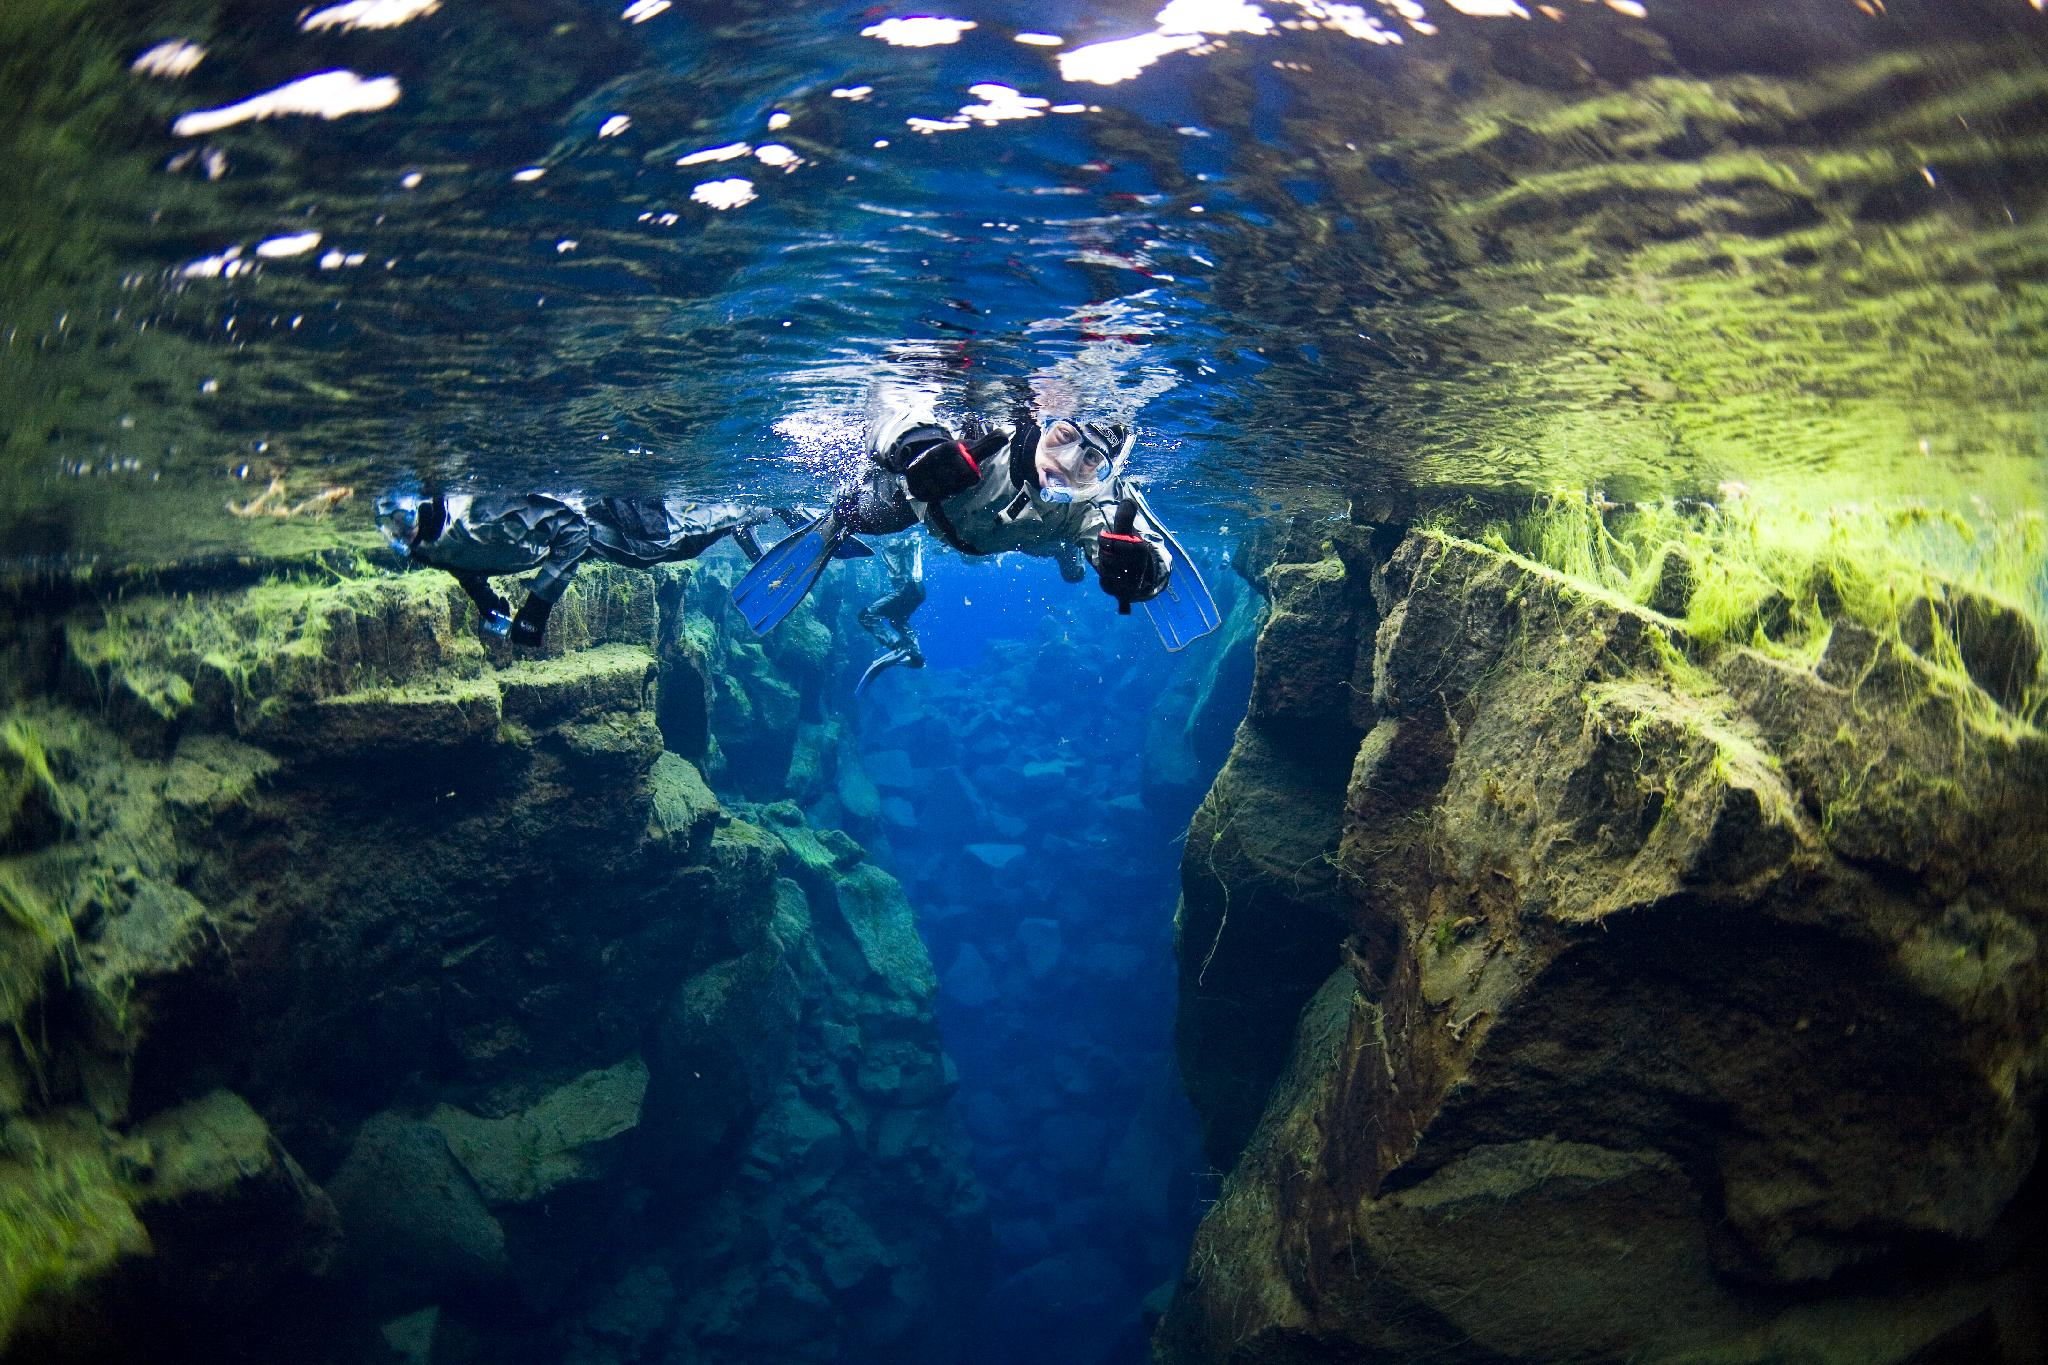 Snorkeling in Silfra Fissure at Þingvellir National Park